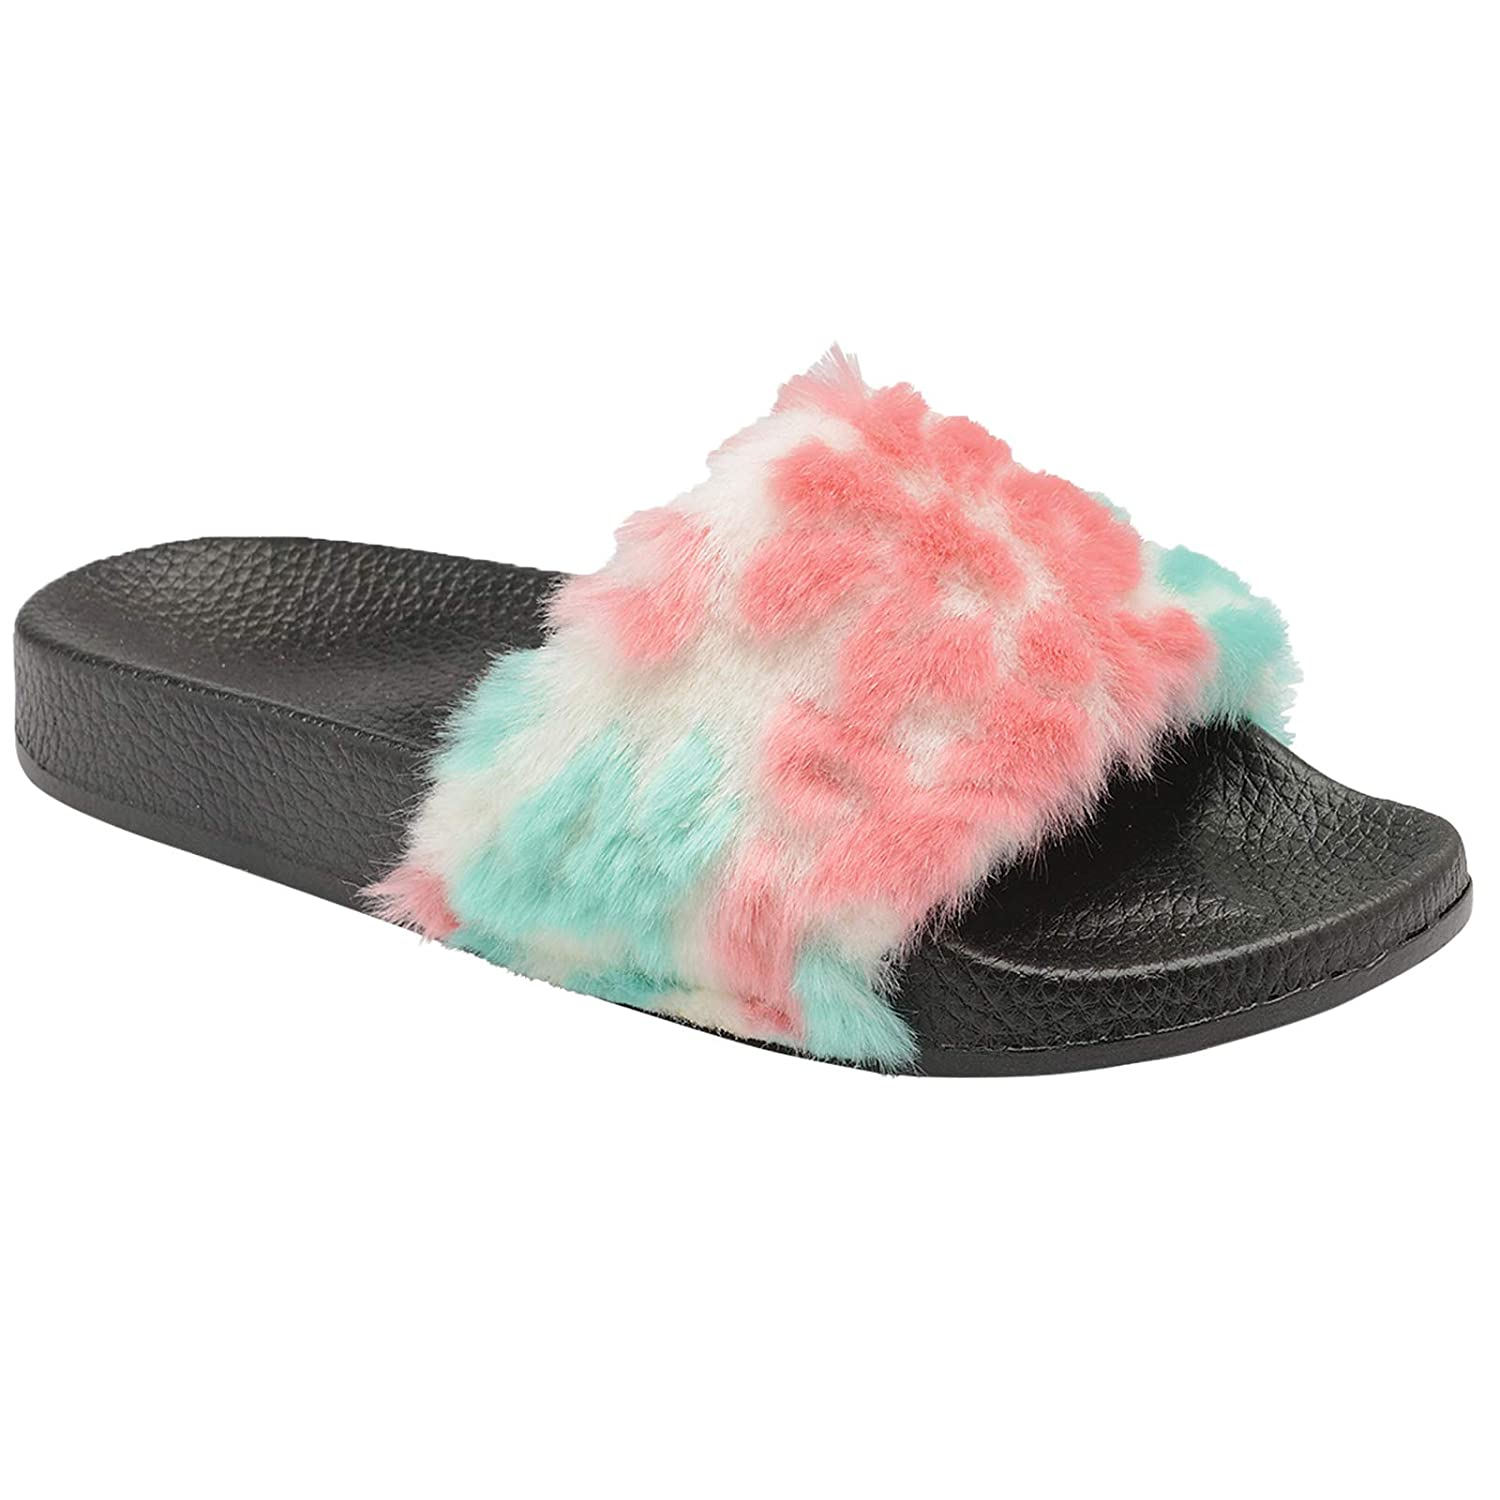 d9515d9fa42d Womens Ladies Faux Fur Flat Sliders Slip On Slippers Holiday Summer Casual  Chic Sandals Mules  Amazon.co.uk  Shoes   Bags